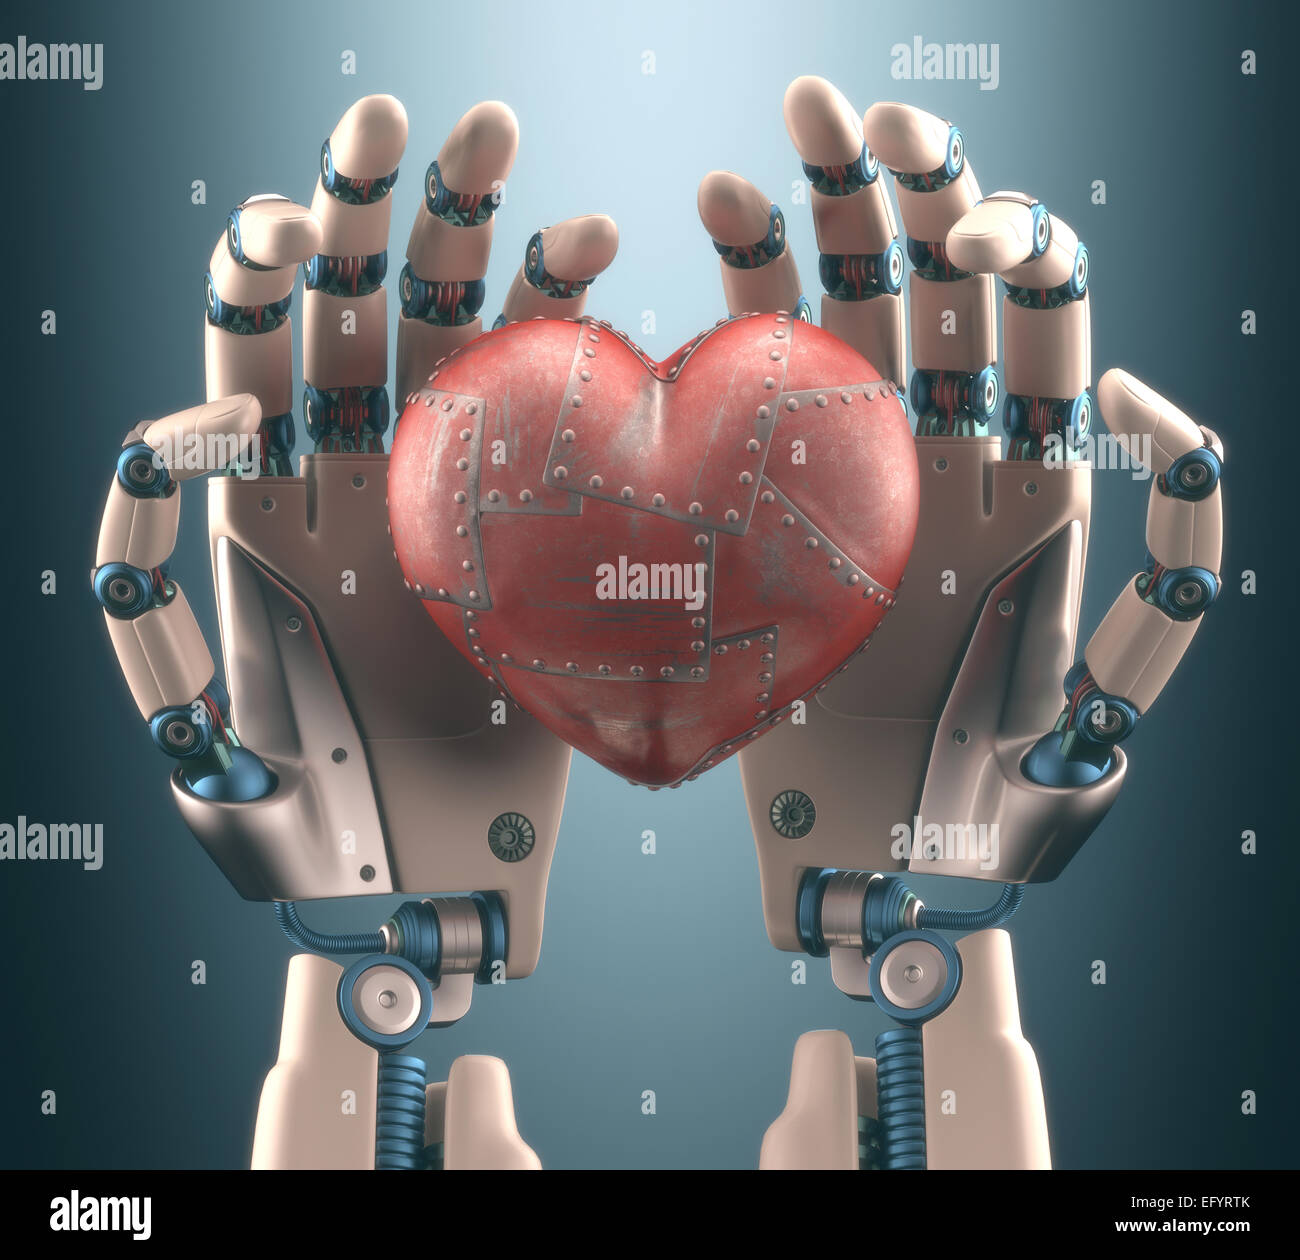 Robot hand holding a metal heart. Clipping path included. Stock Photo